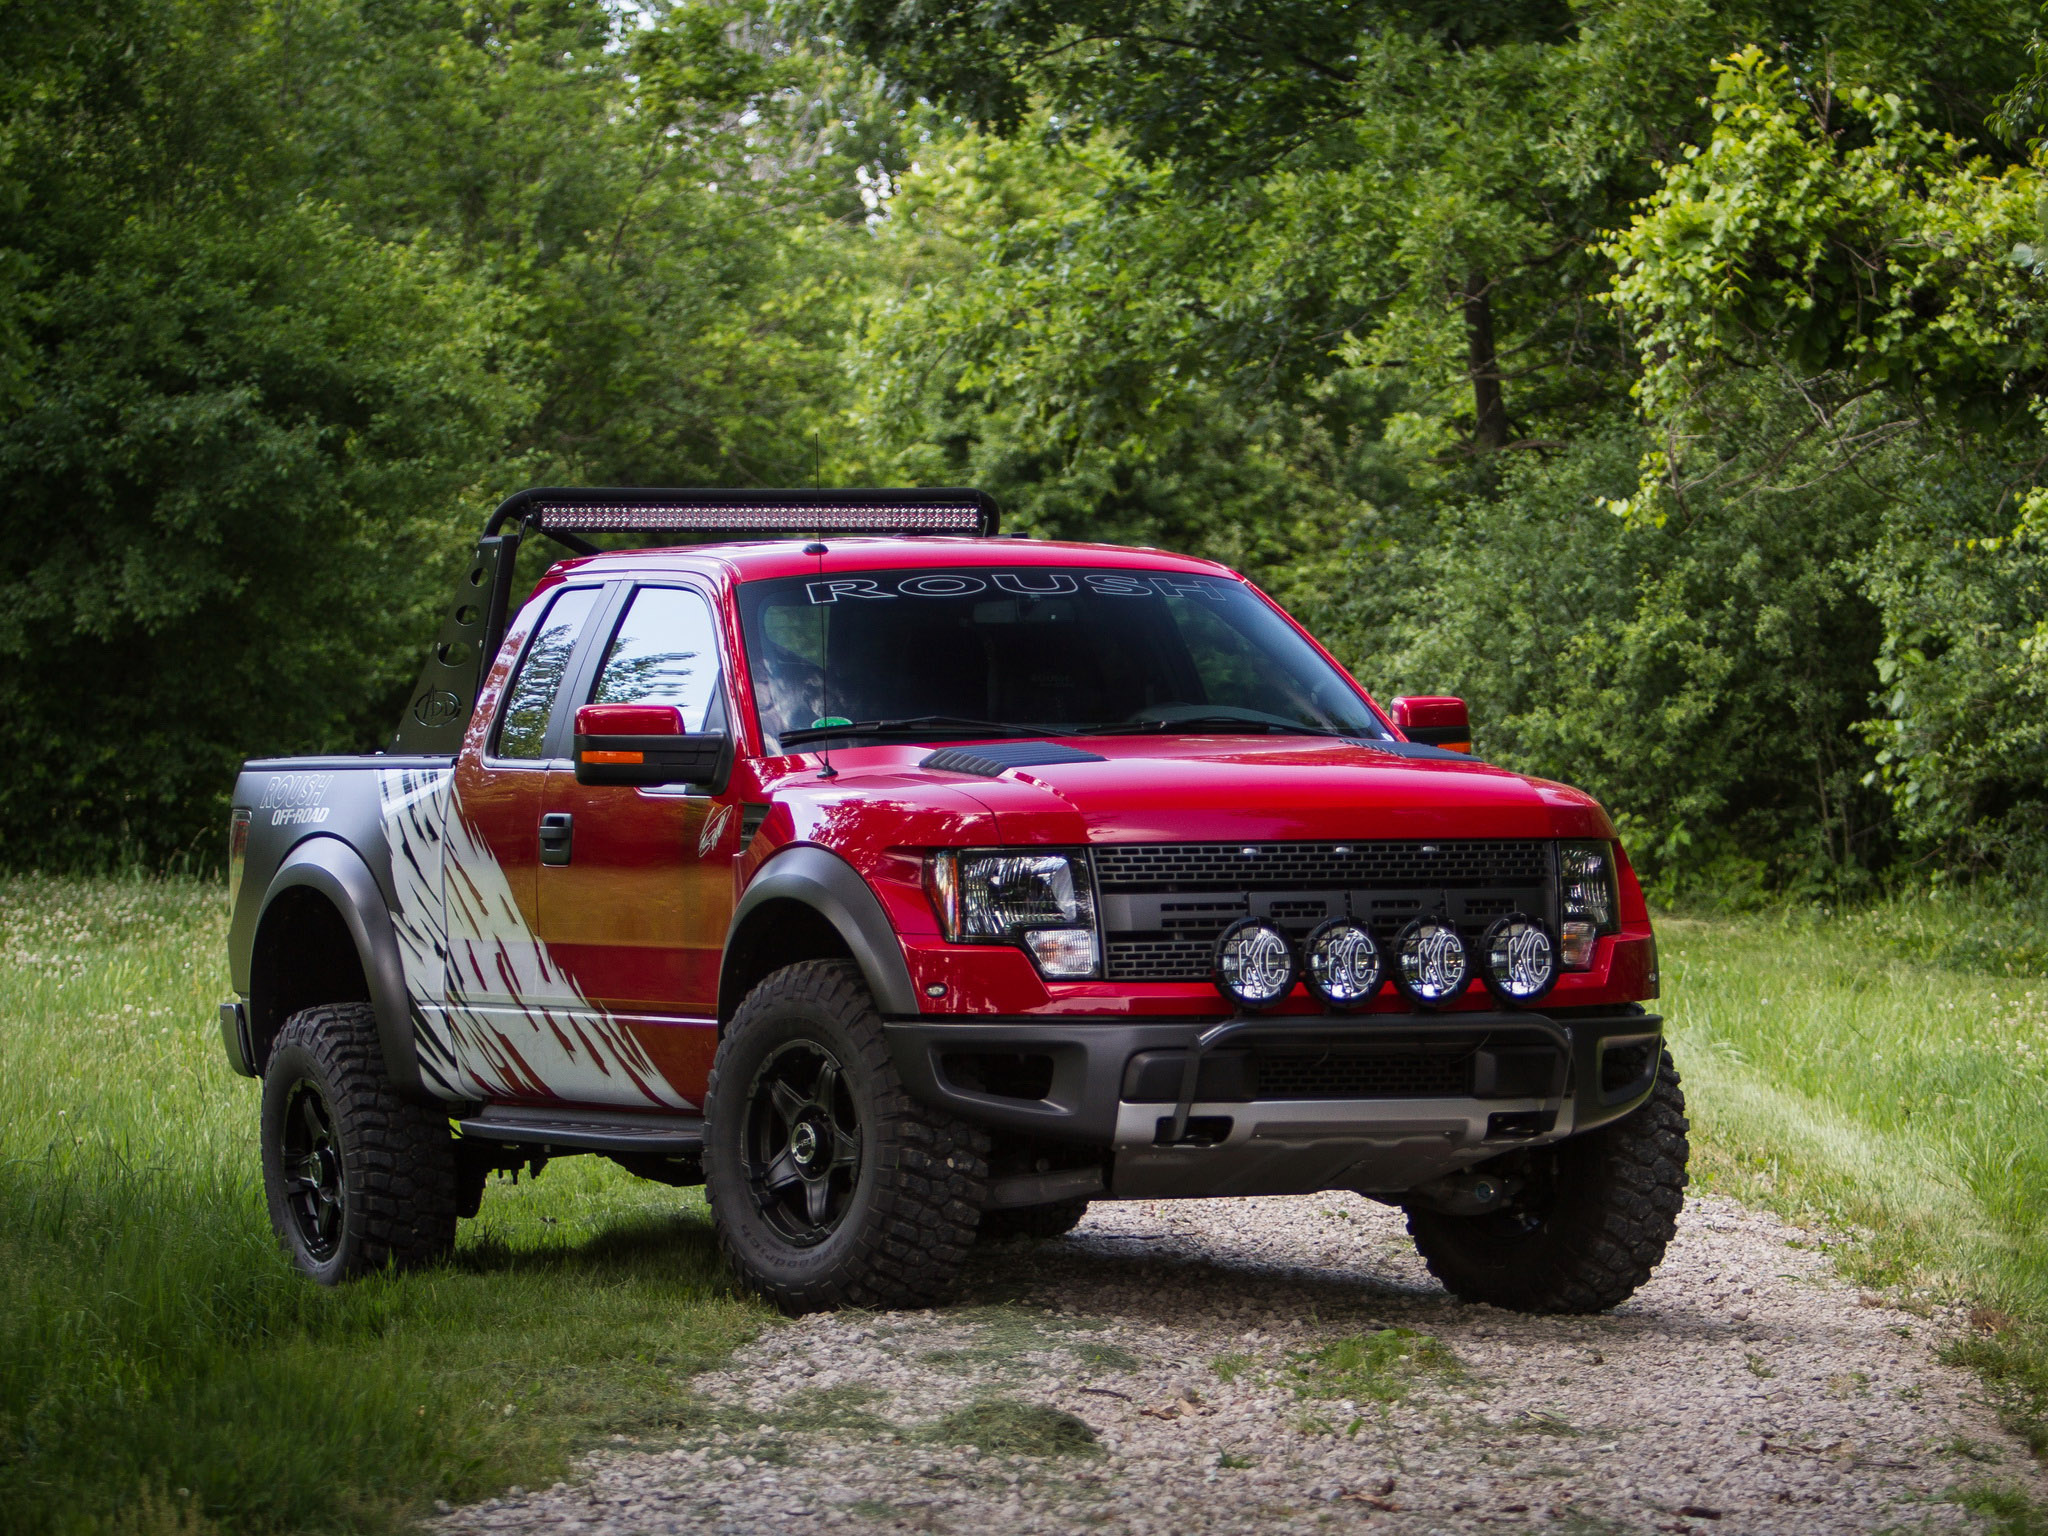 2012 Roush Ford F 150 SVT Raptor 4x4 Muscle Truck H Wallpaper